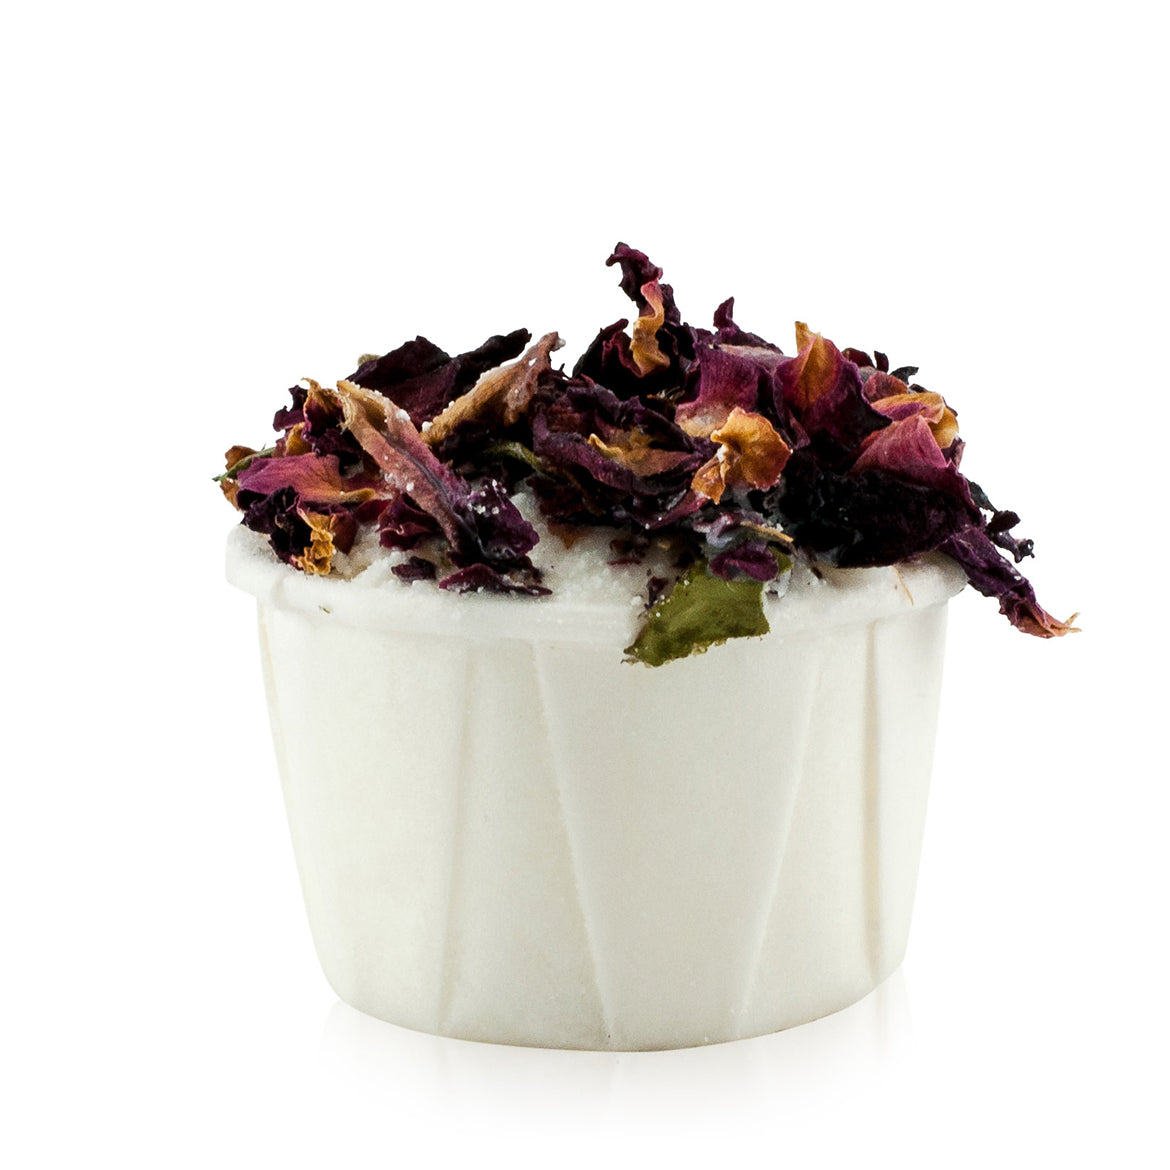 Natural vegan skincare 60g Rose Buttercup bath melt, decorated with rose petals, handmade by WiDEYE in Rye.